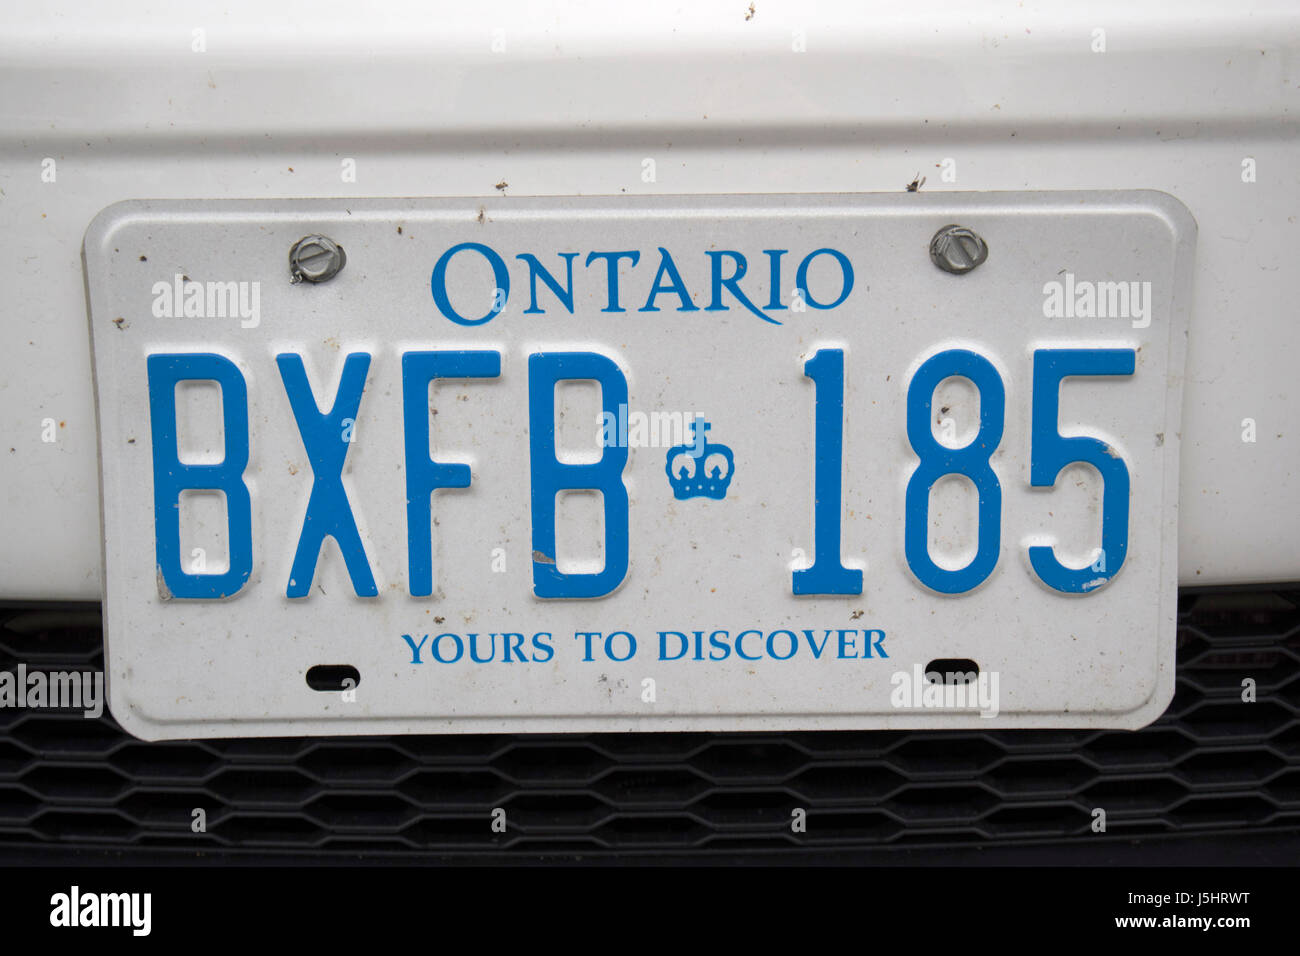 ontario yours to discover canadian province license plate - Stock Image